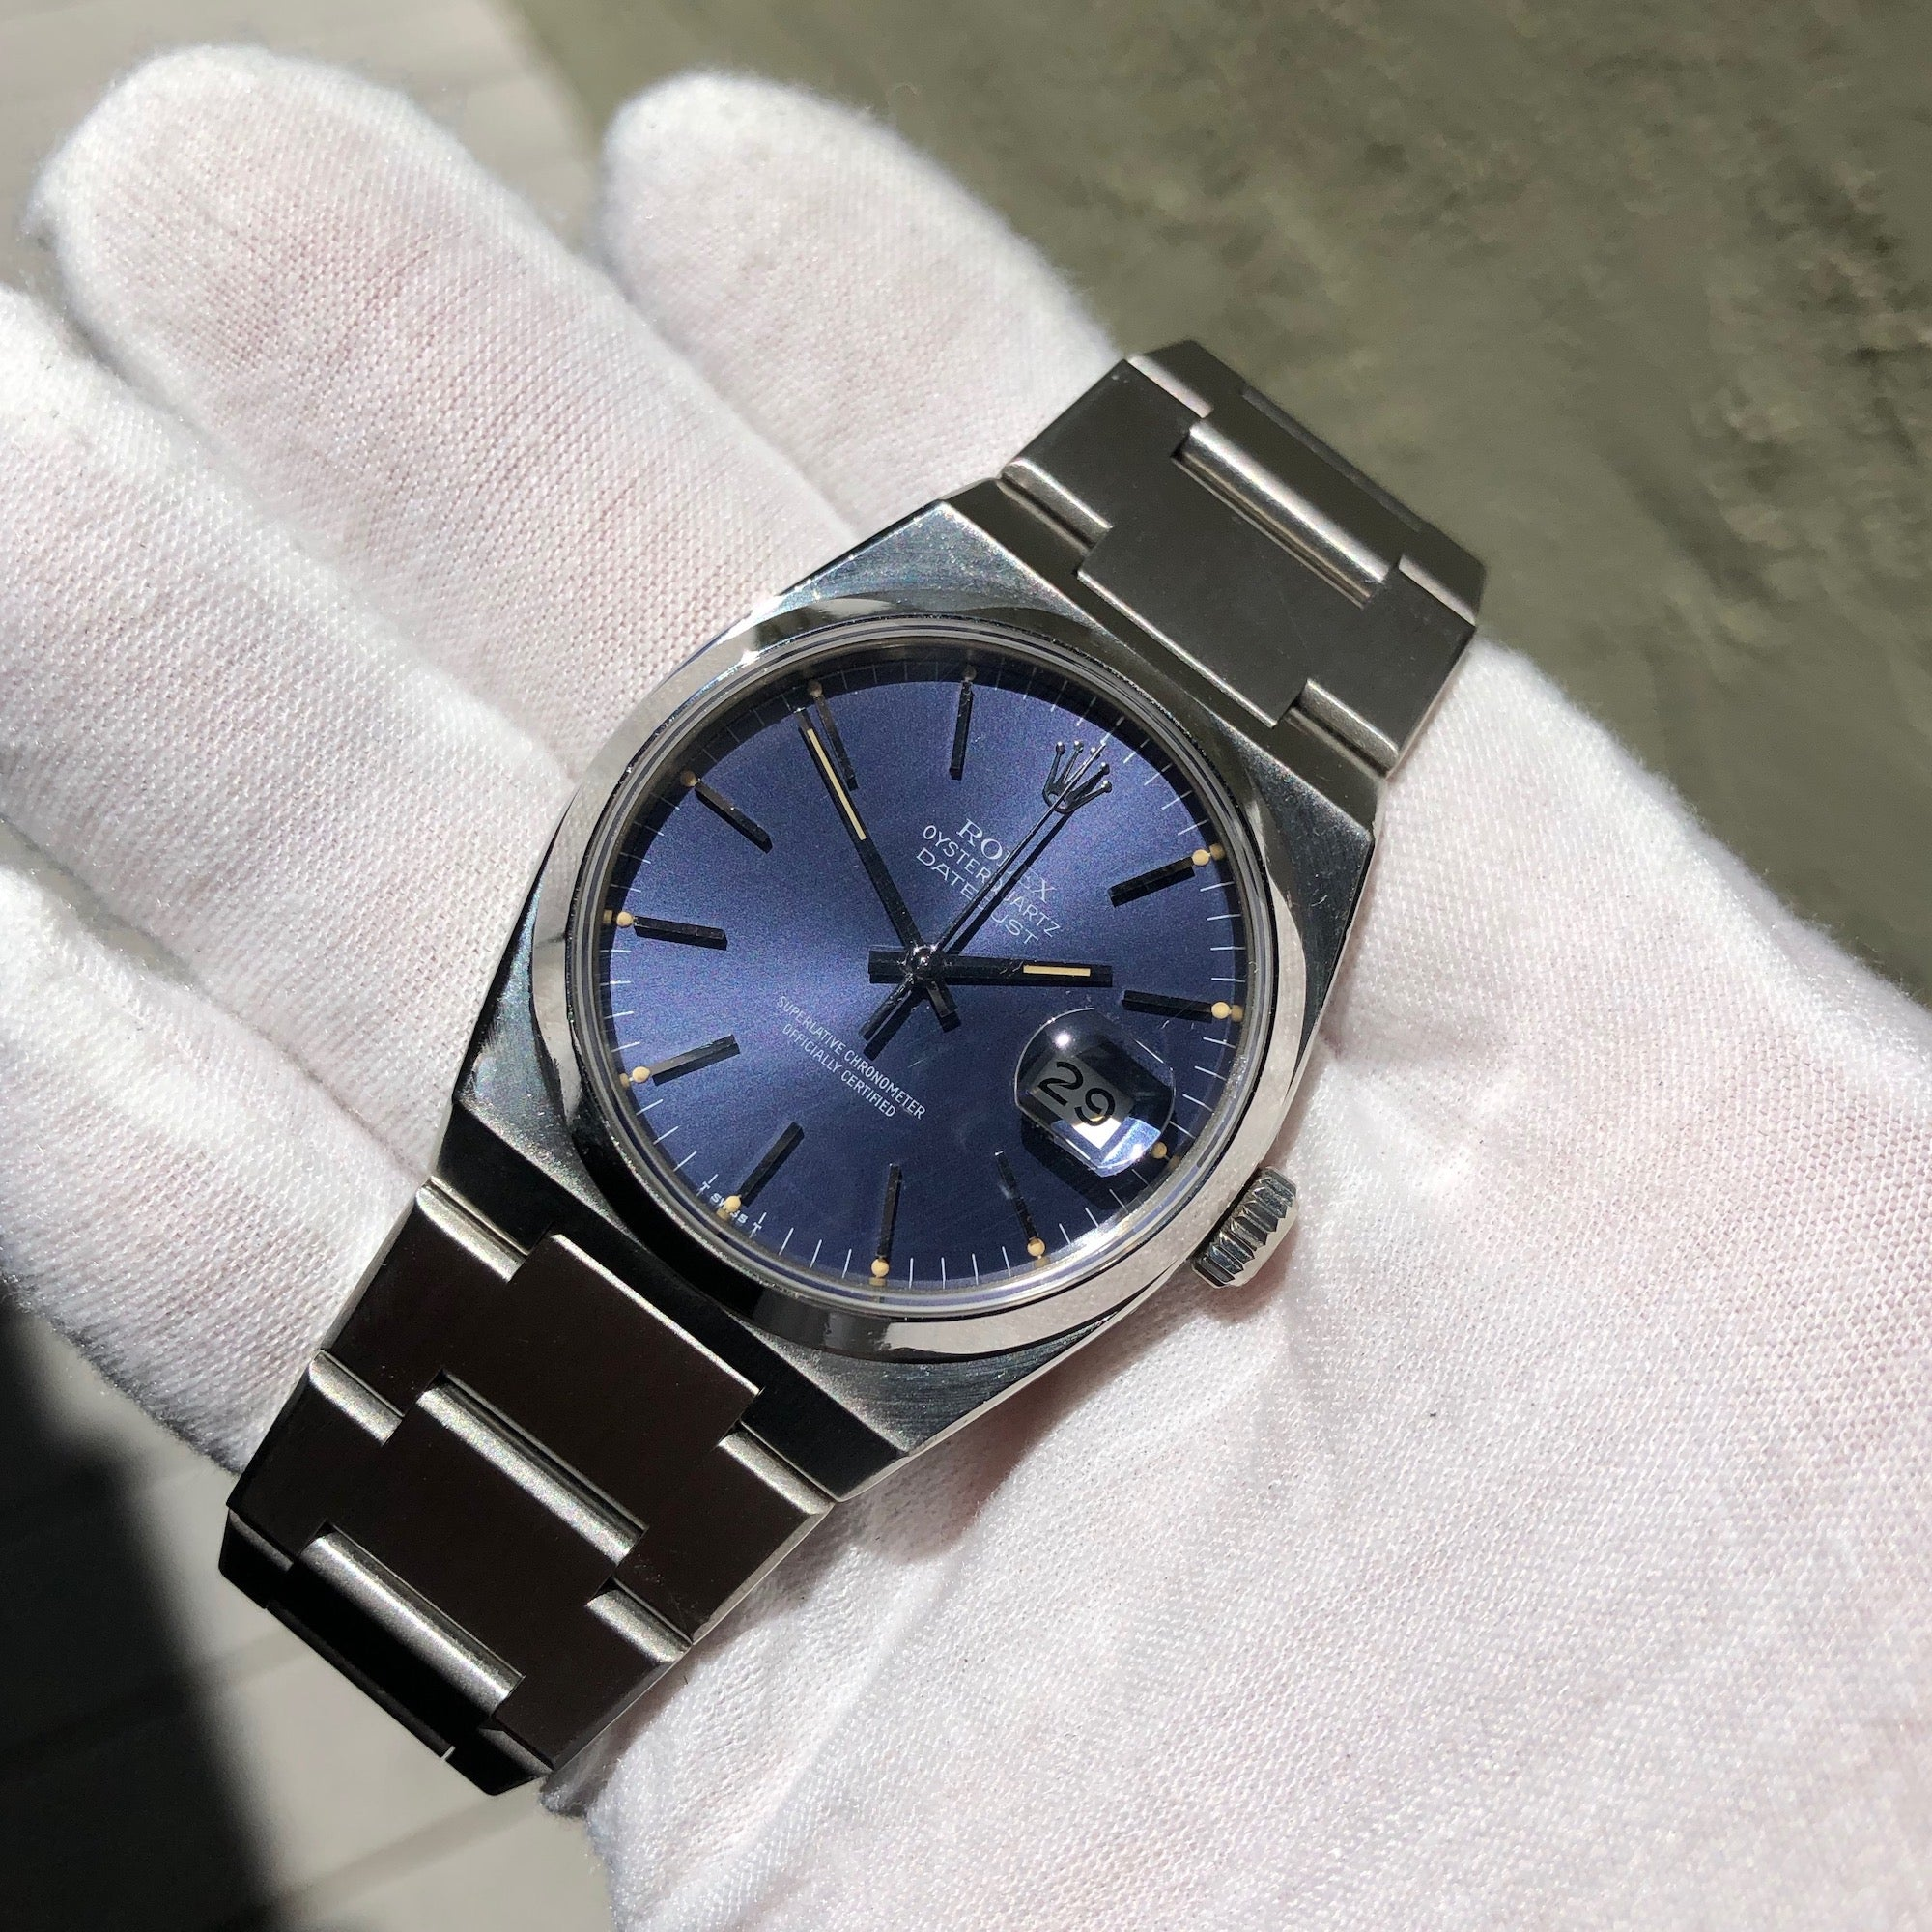 Vintage Rolex Datejust Oysterquartz 17000 Stainless Steel Tropical Wristwatch Circa 1982 - Hashtag Watch Company